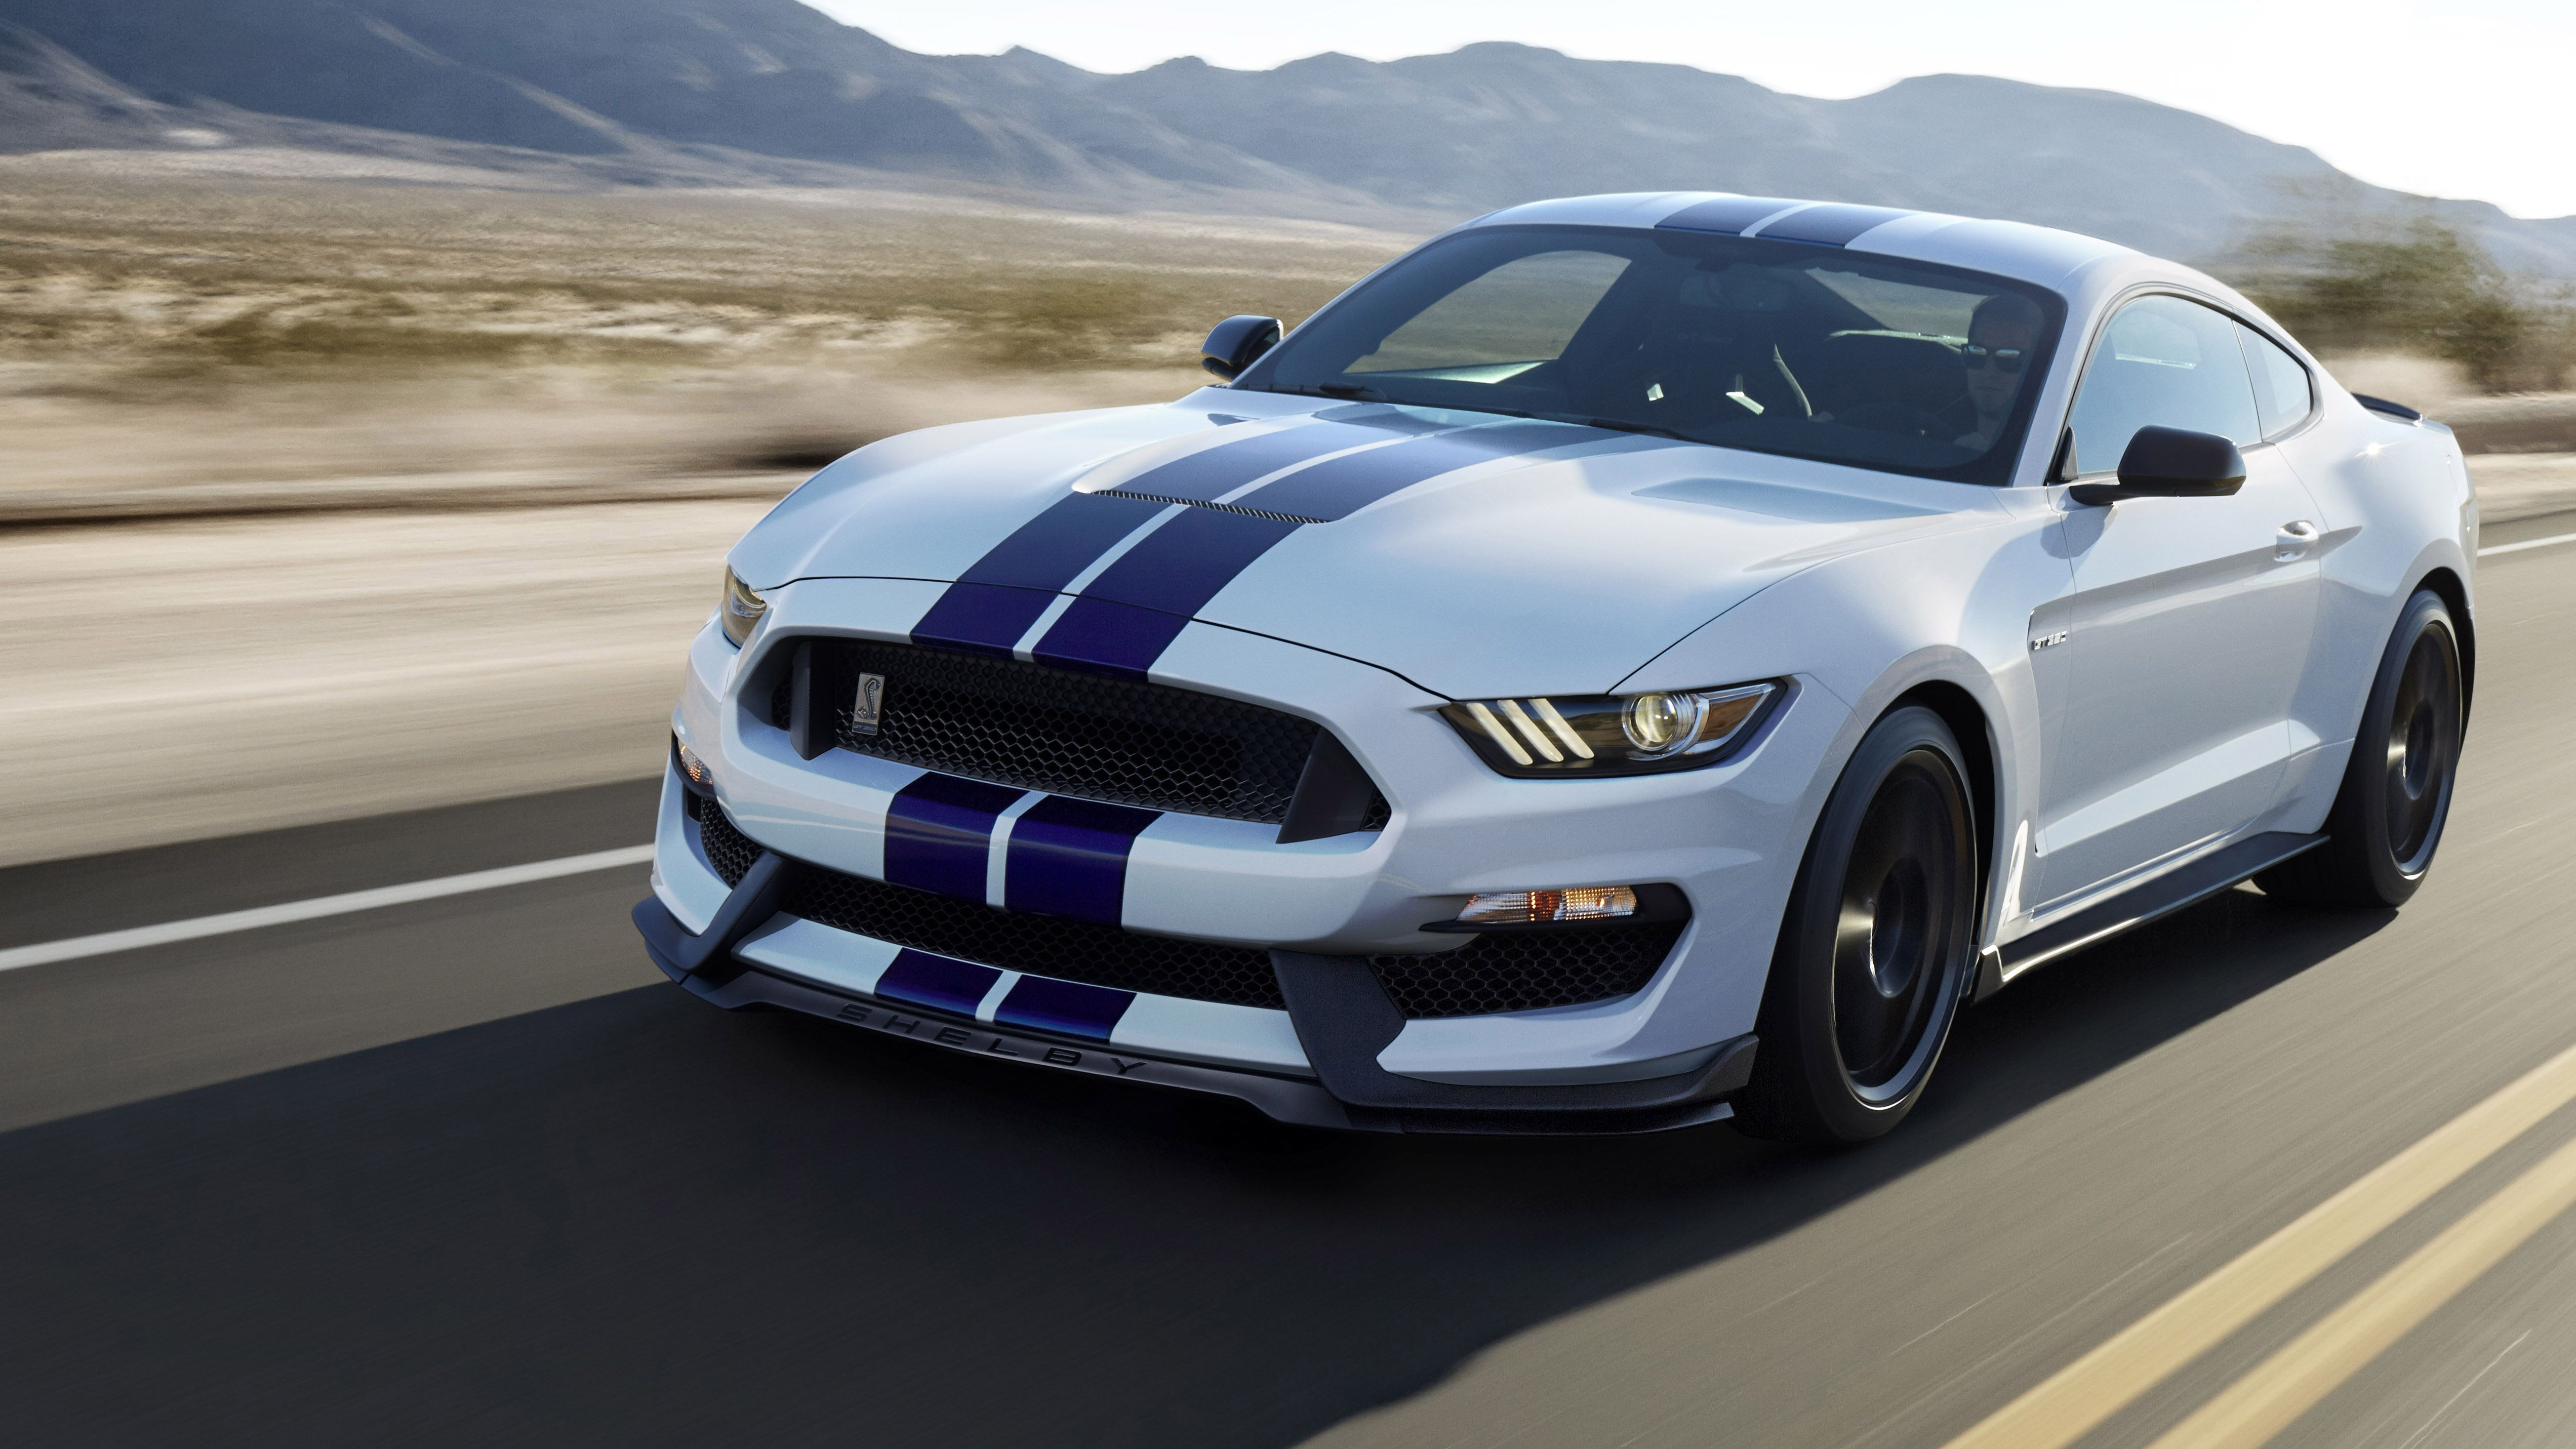 shelby gt350 should start around $50k ford mustang shelby gt3502016 Ford Mustang Shelby #6